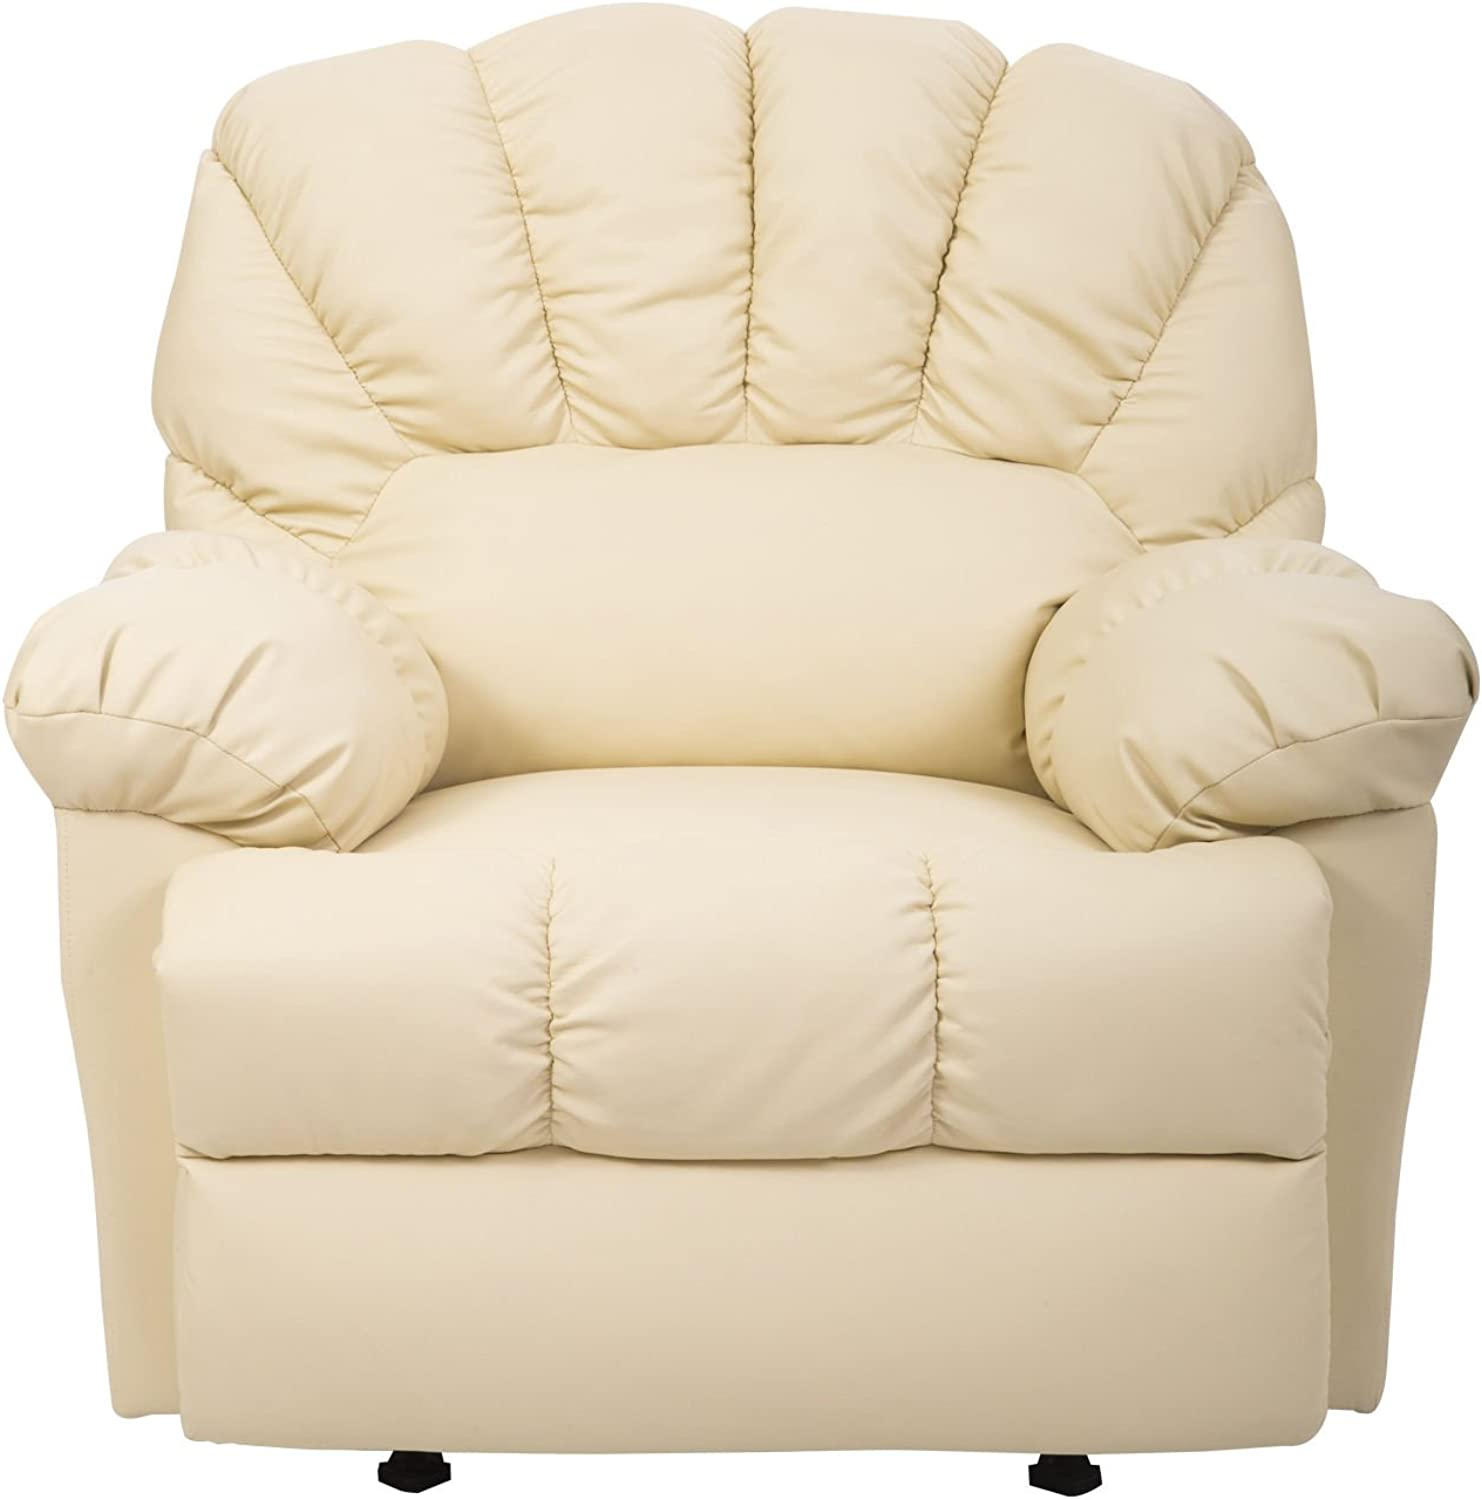 Generic e Cream Room Furniture ure Cream New Chair Living Room Furn Recliner Sofa Rocking Single Chai Cream New a Rocking Couc Couch Single